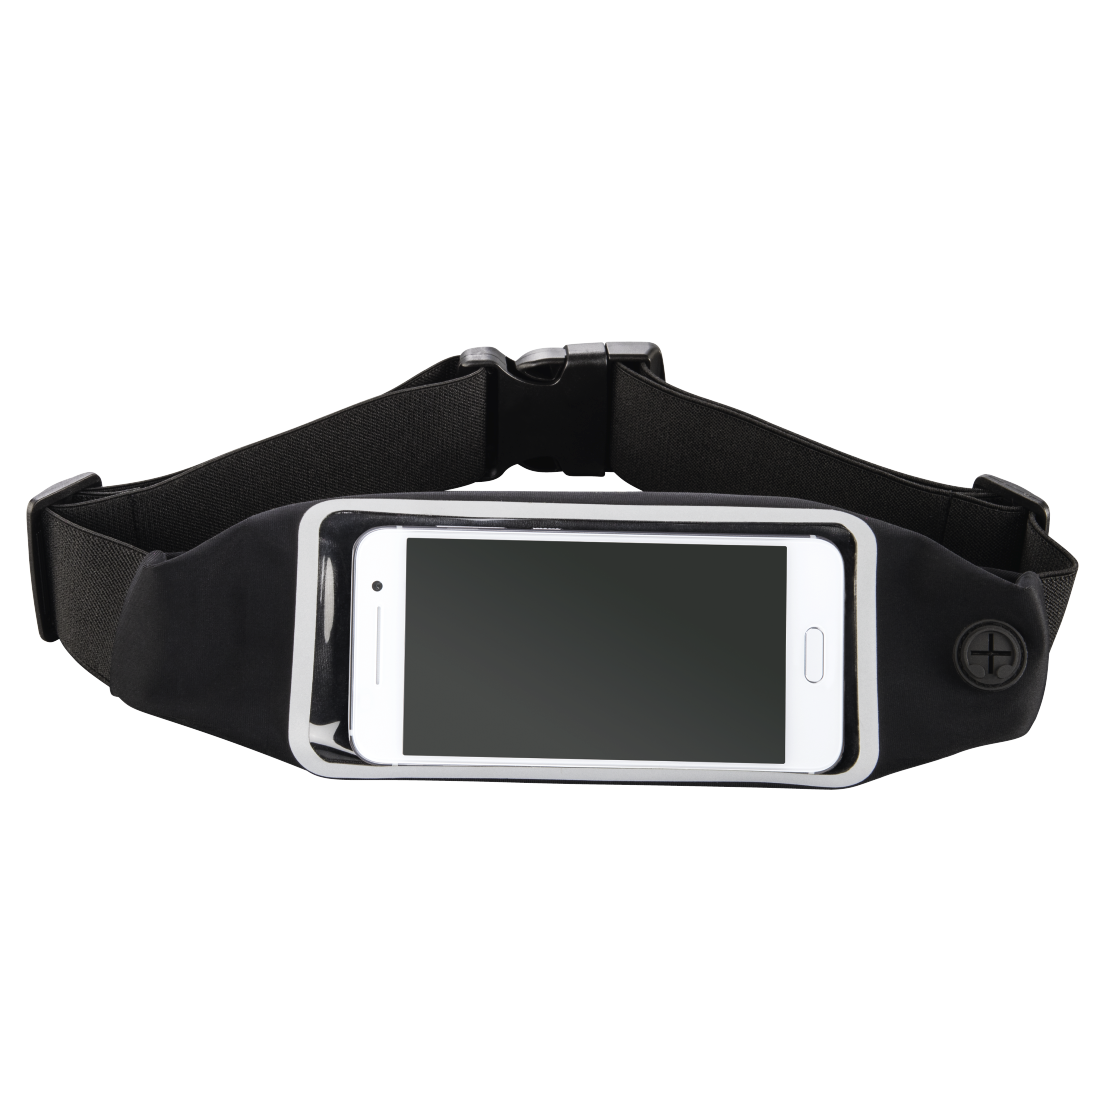 "abx High-Res Image - Hama, ""Running"" Sports Hip Pouch for Smartphones, with Viewing Window, black"